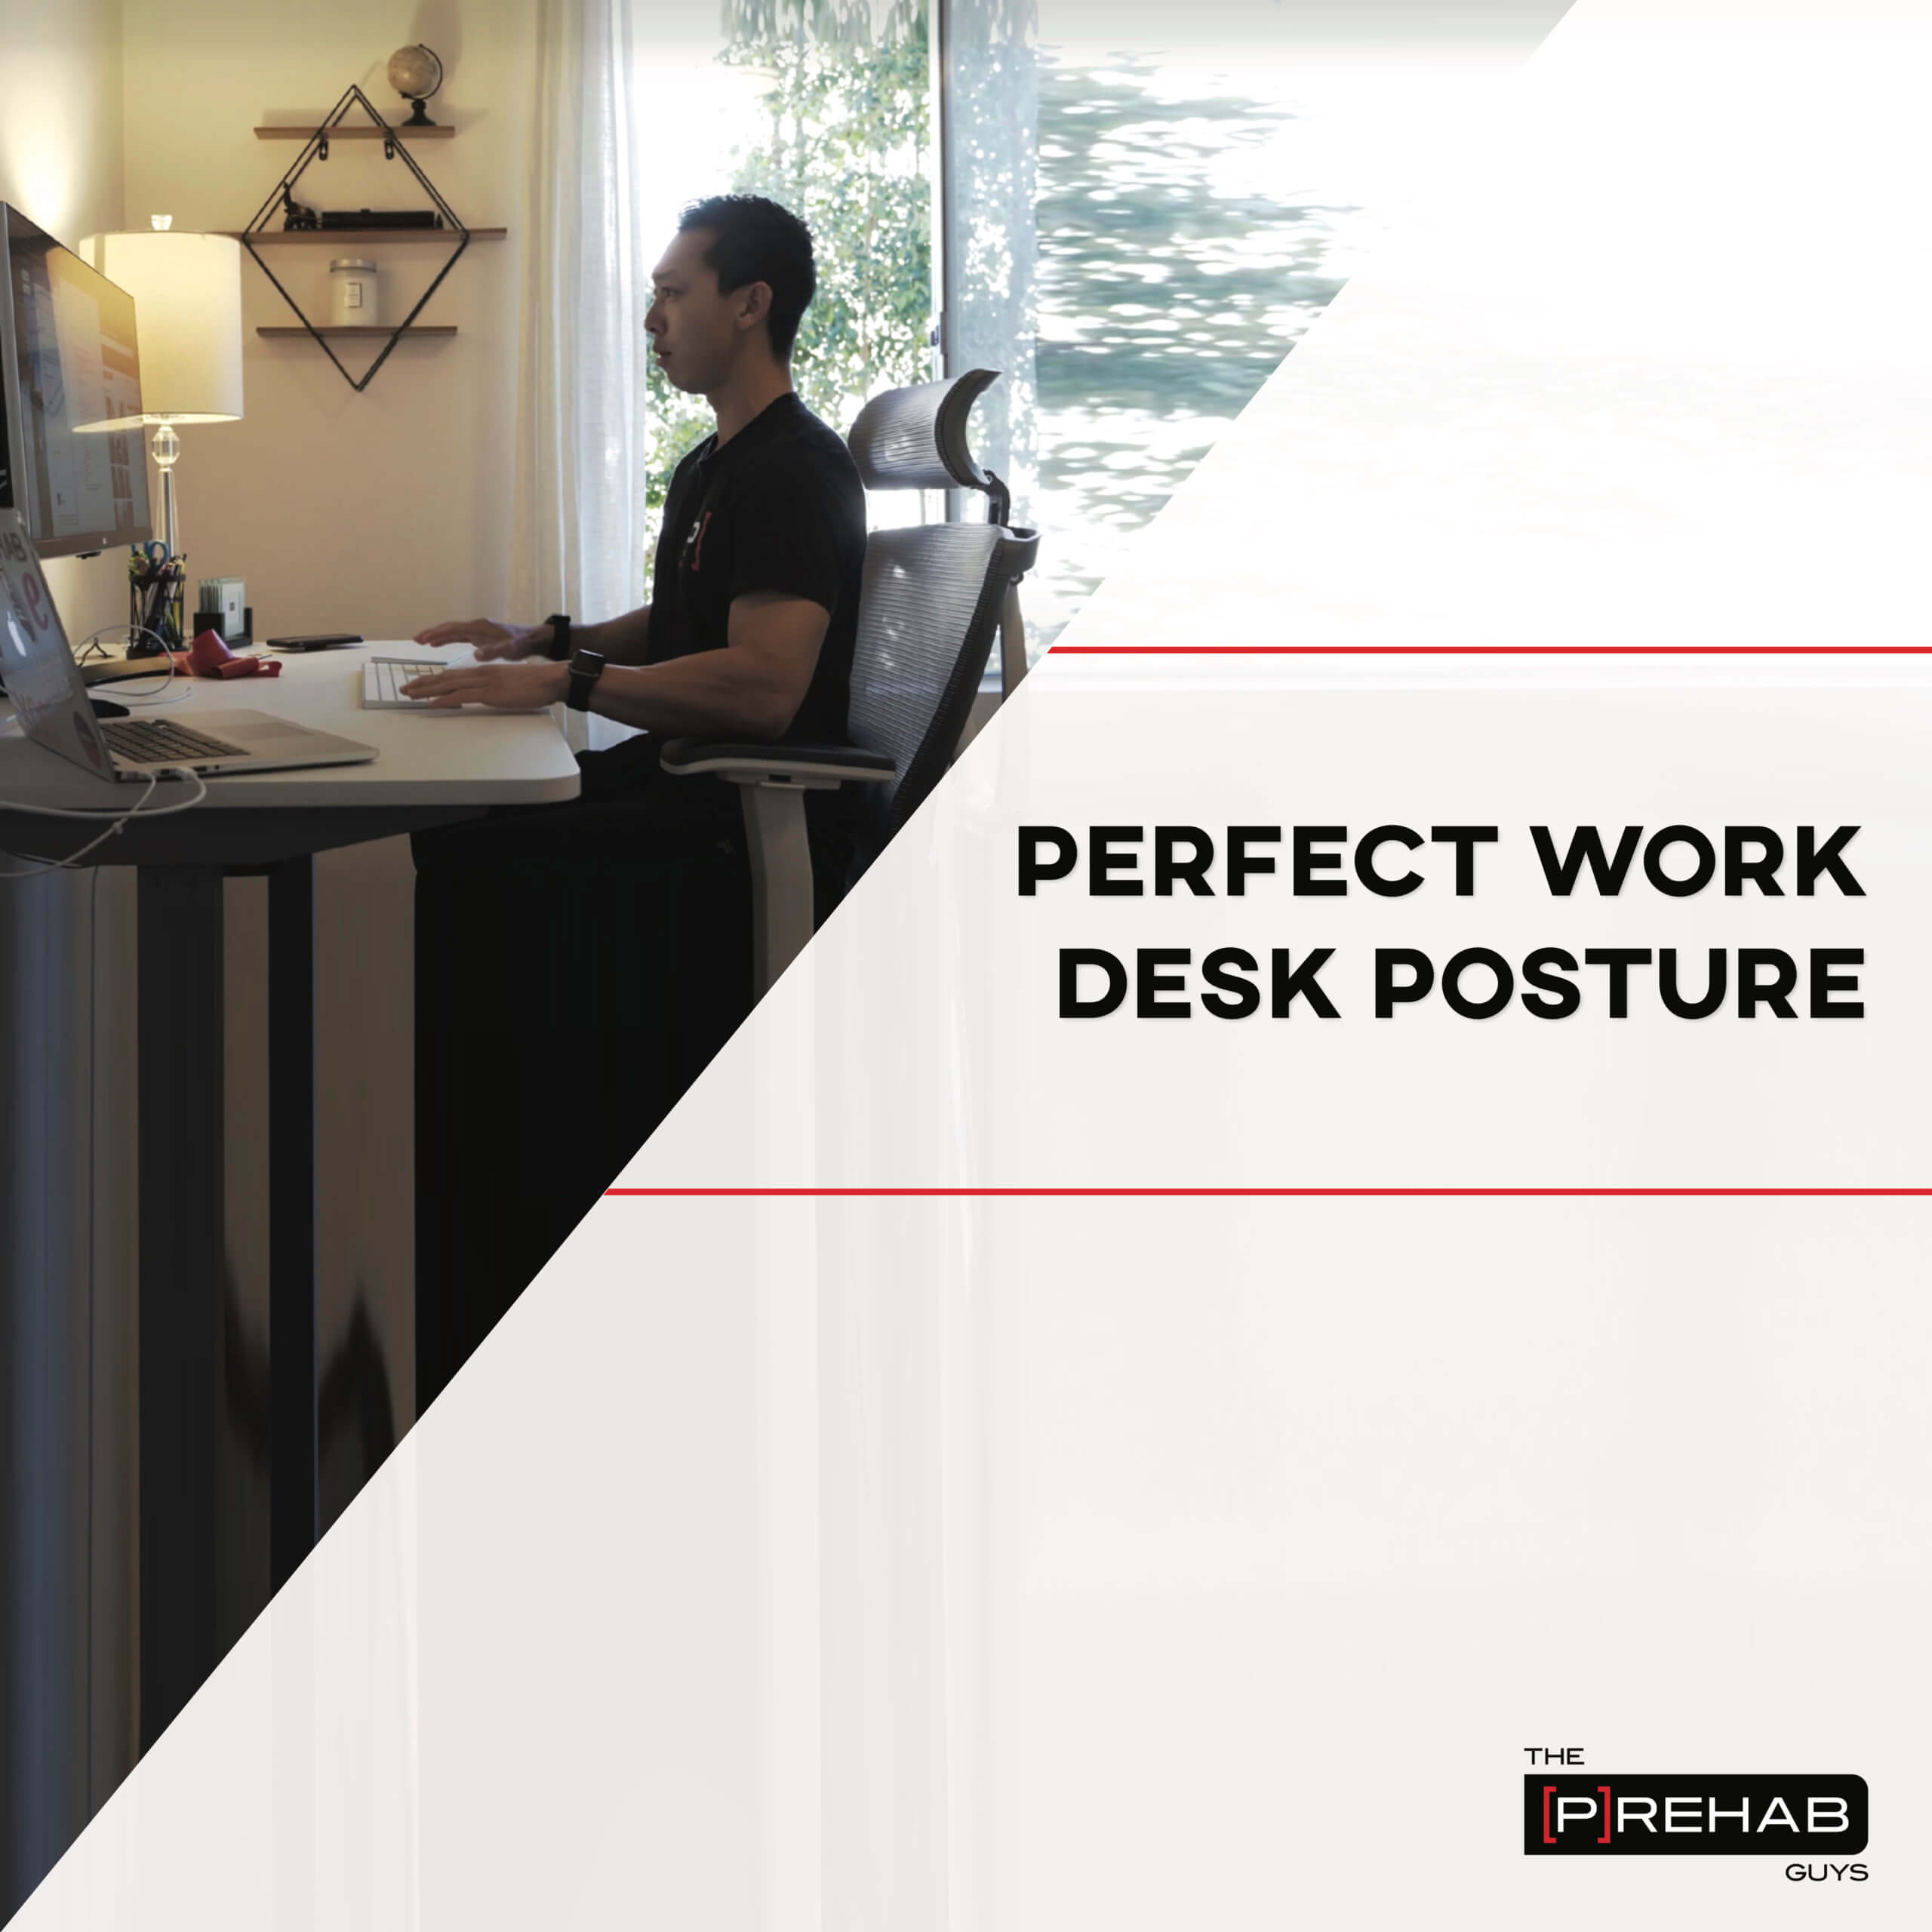 perfect work desk posture the prehab guys